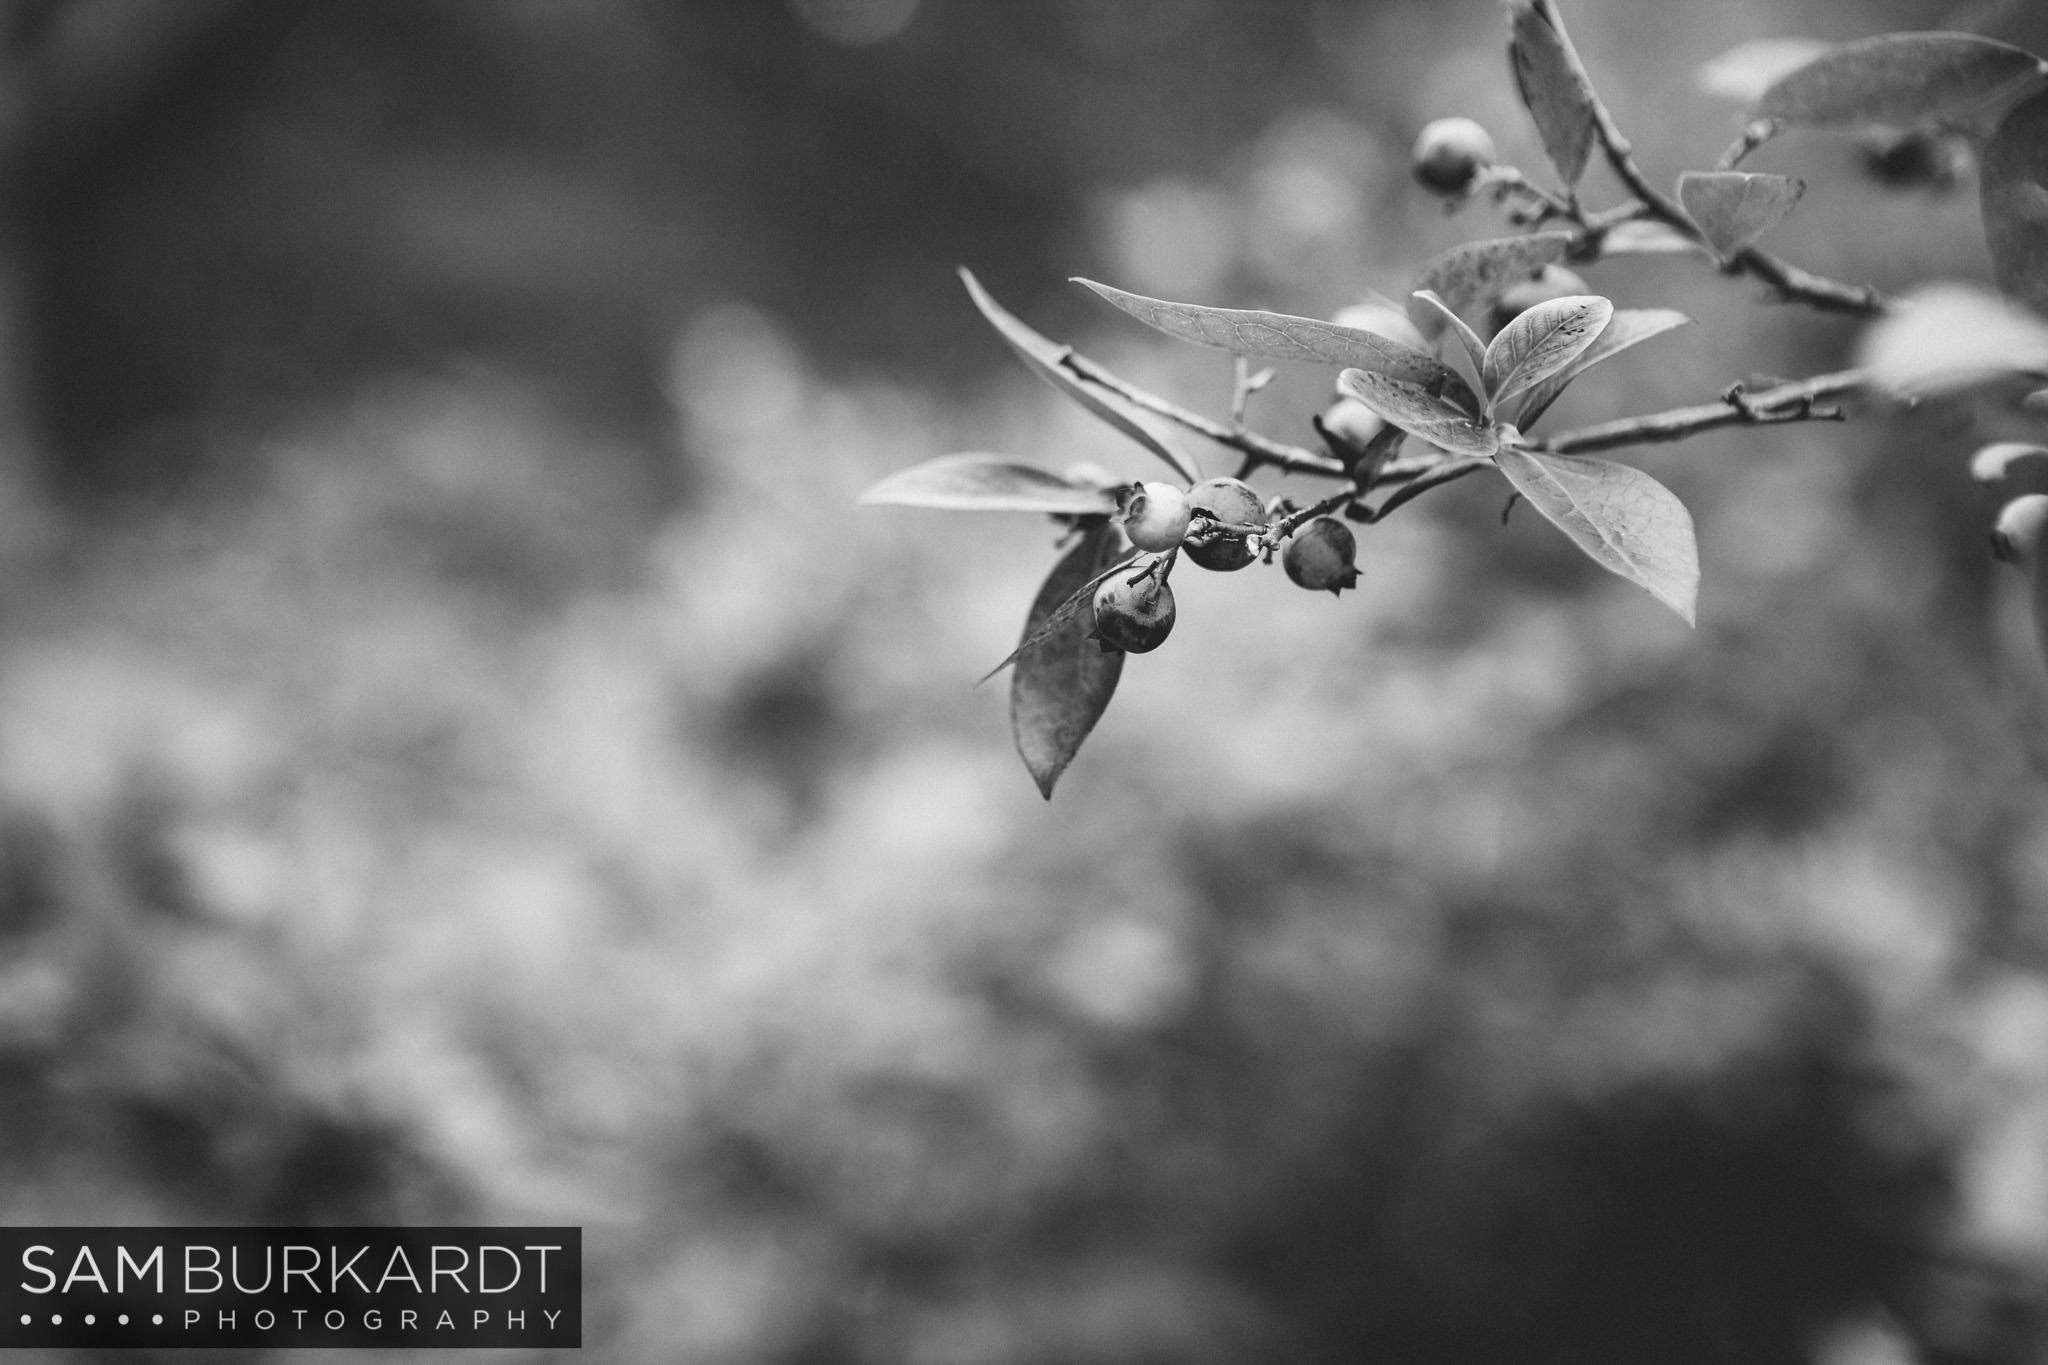 samburkardt_blueberries_kent_connecticut_006.jpg